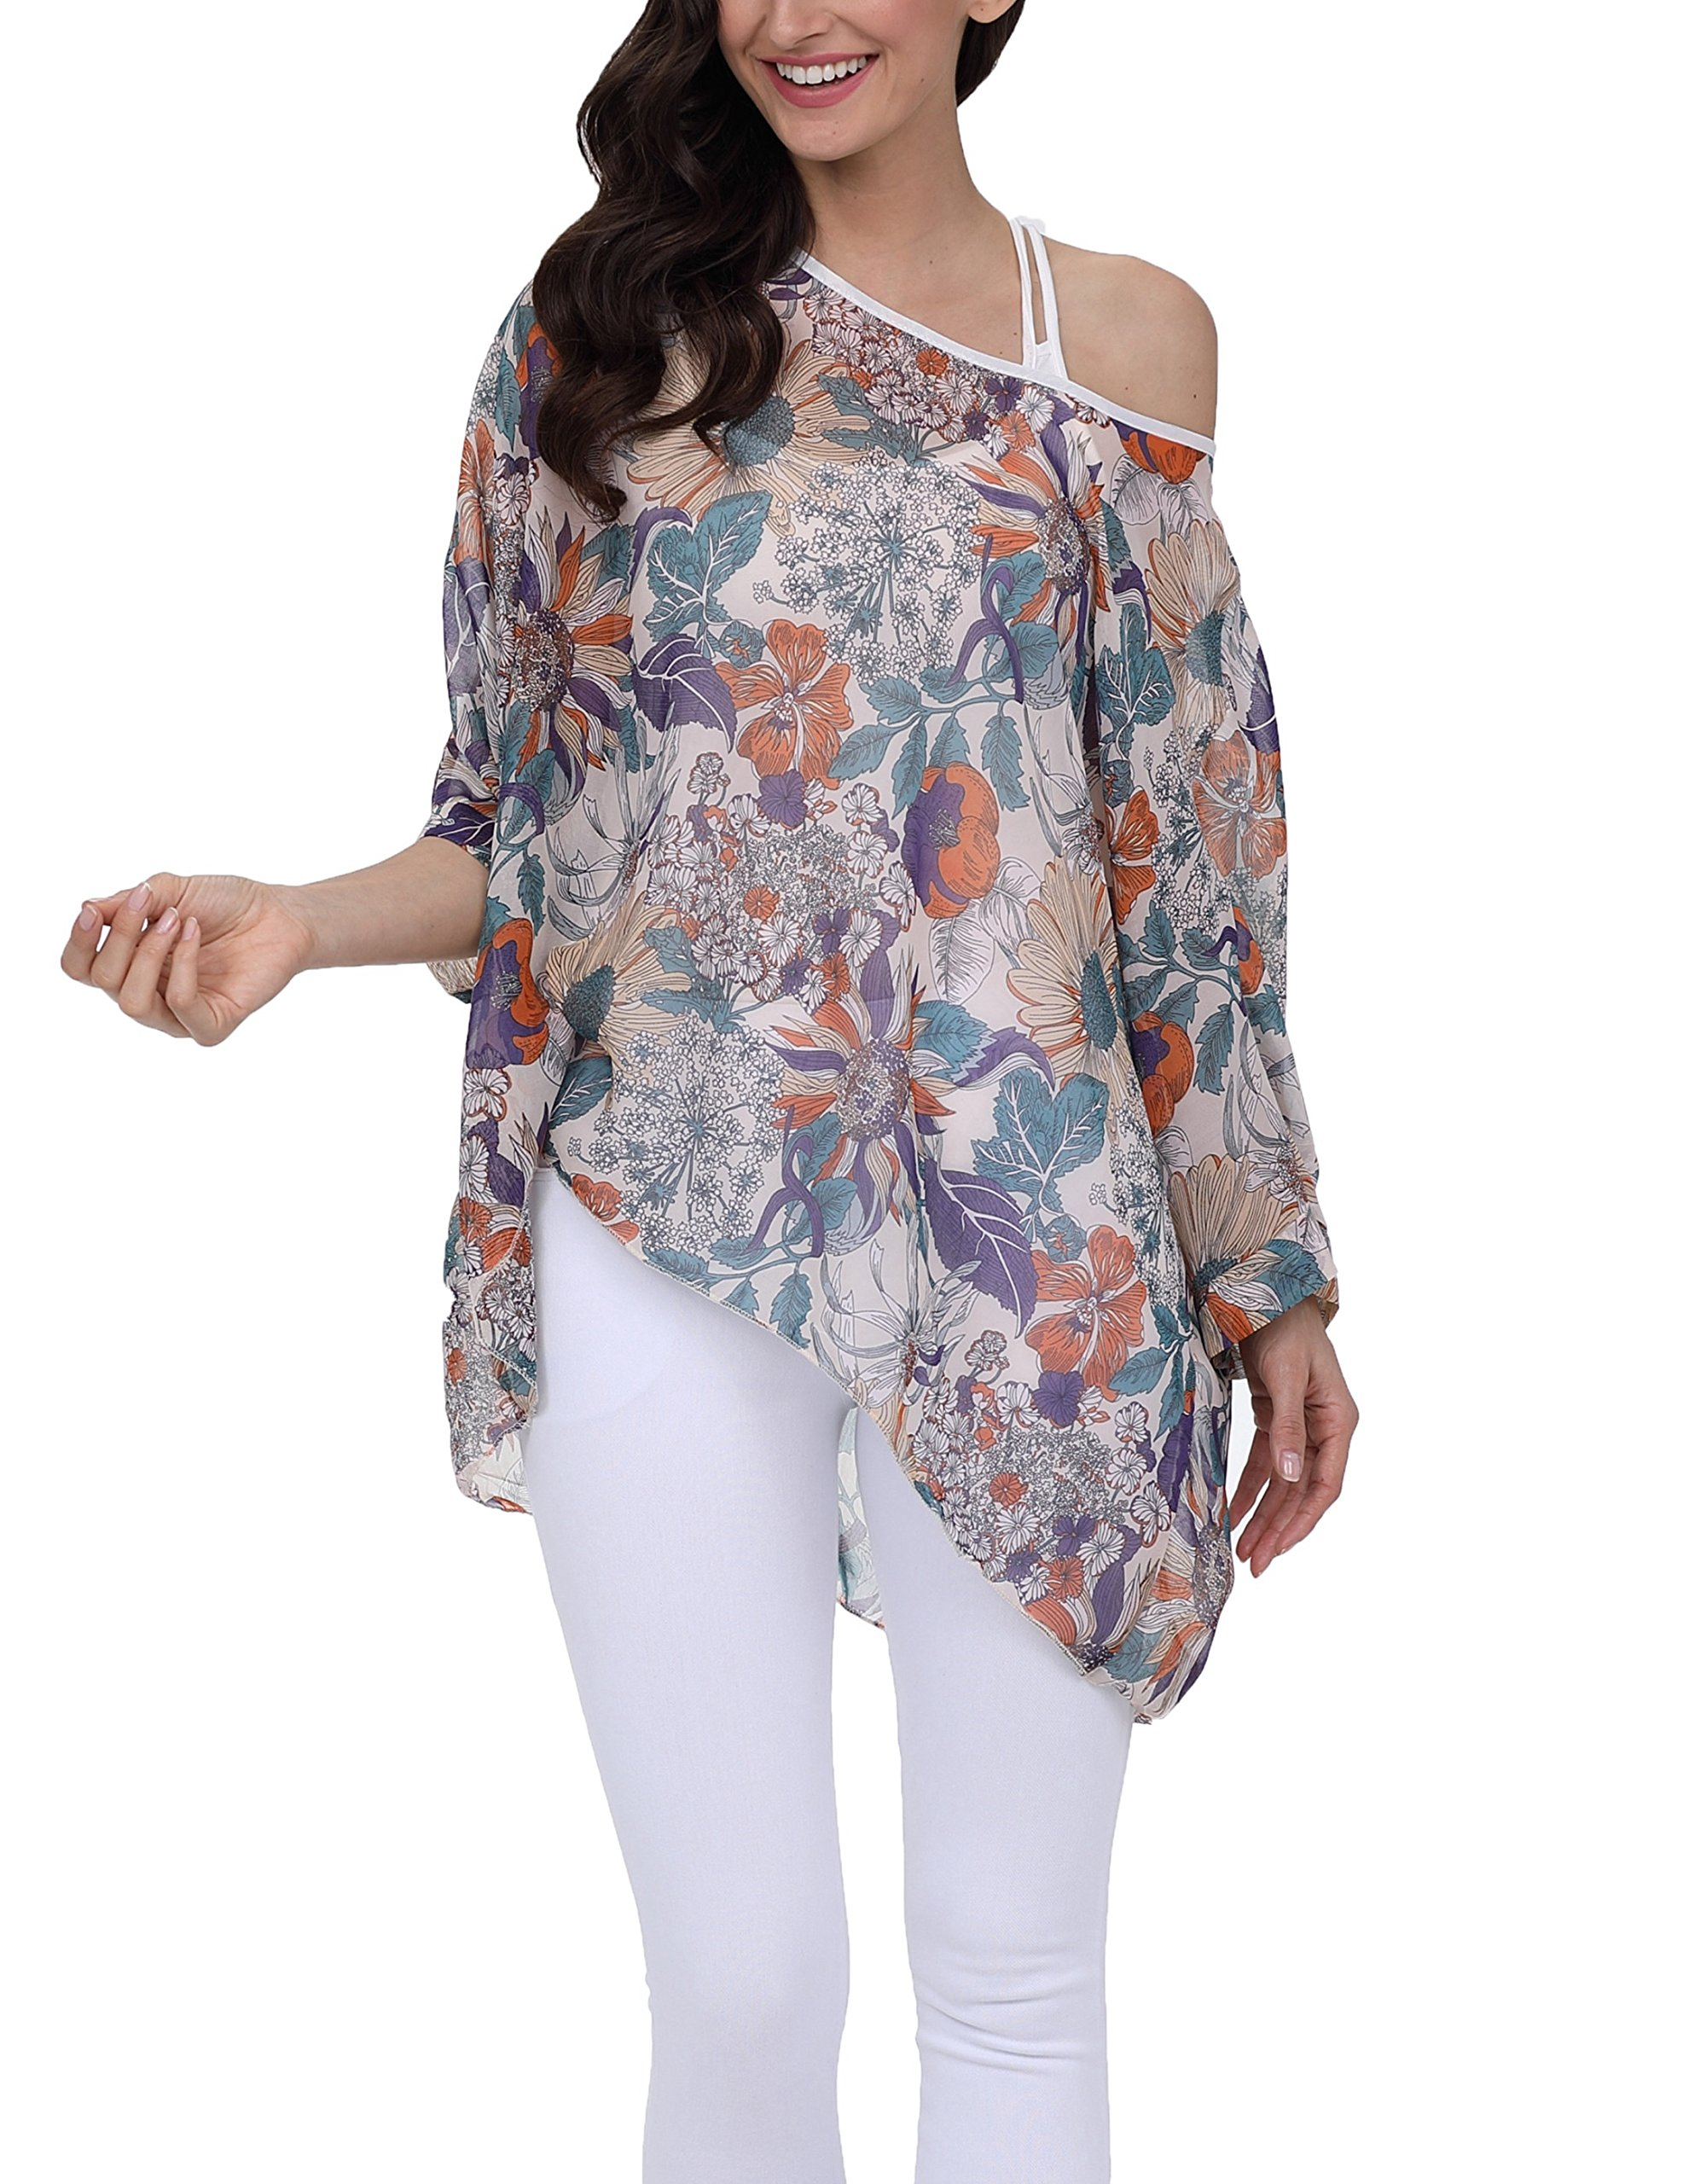 Vanbuy Women Summer Floral Printed Batwing Sleeve Top Chiffon Poncho Casual Loose Blouse Z91-4304